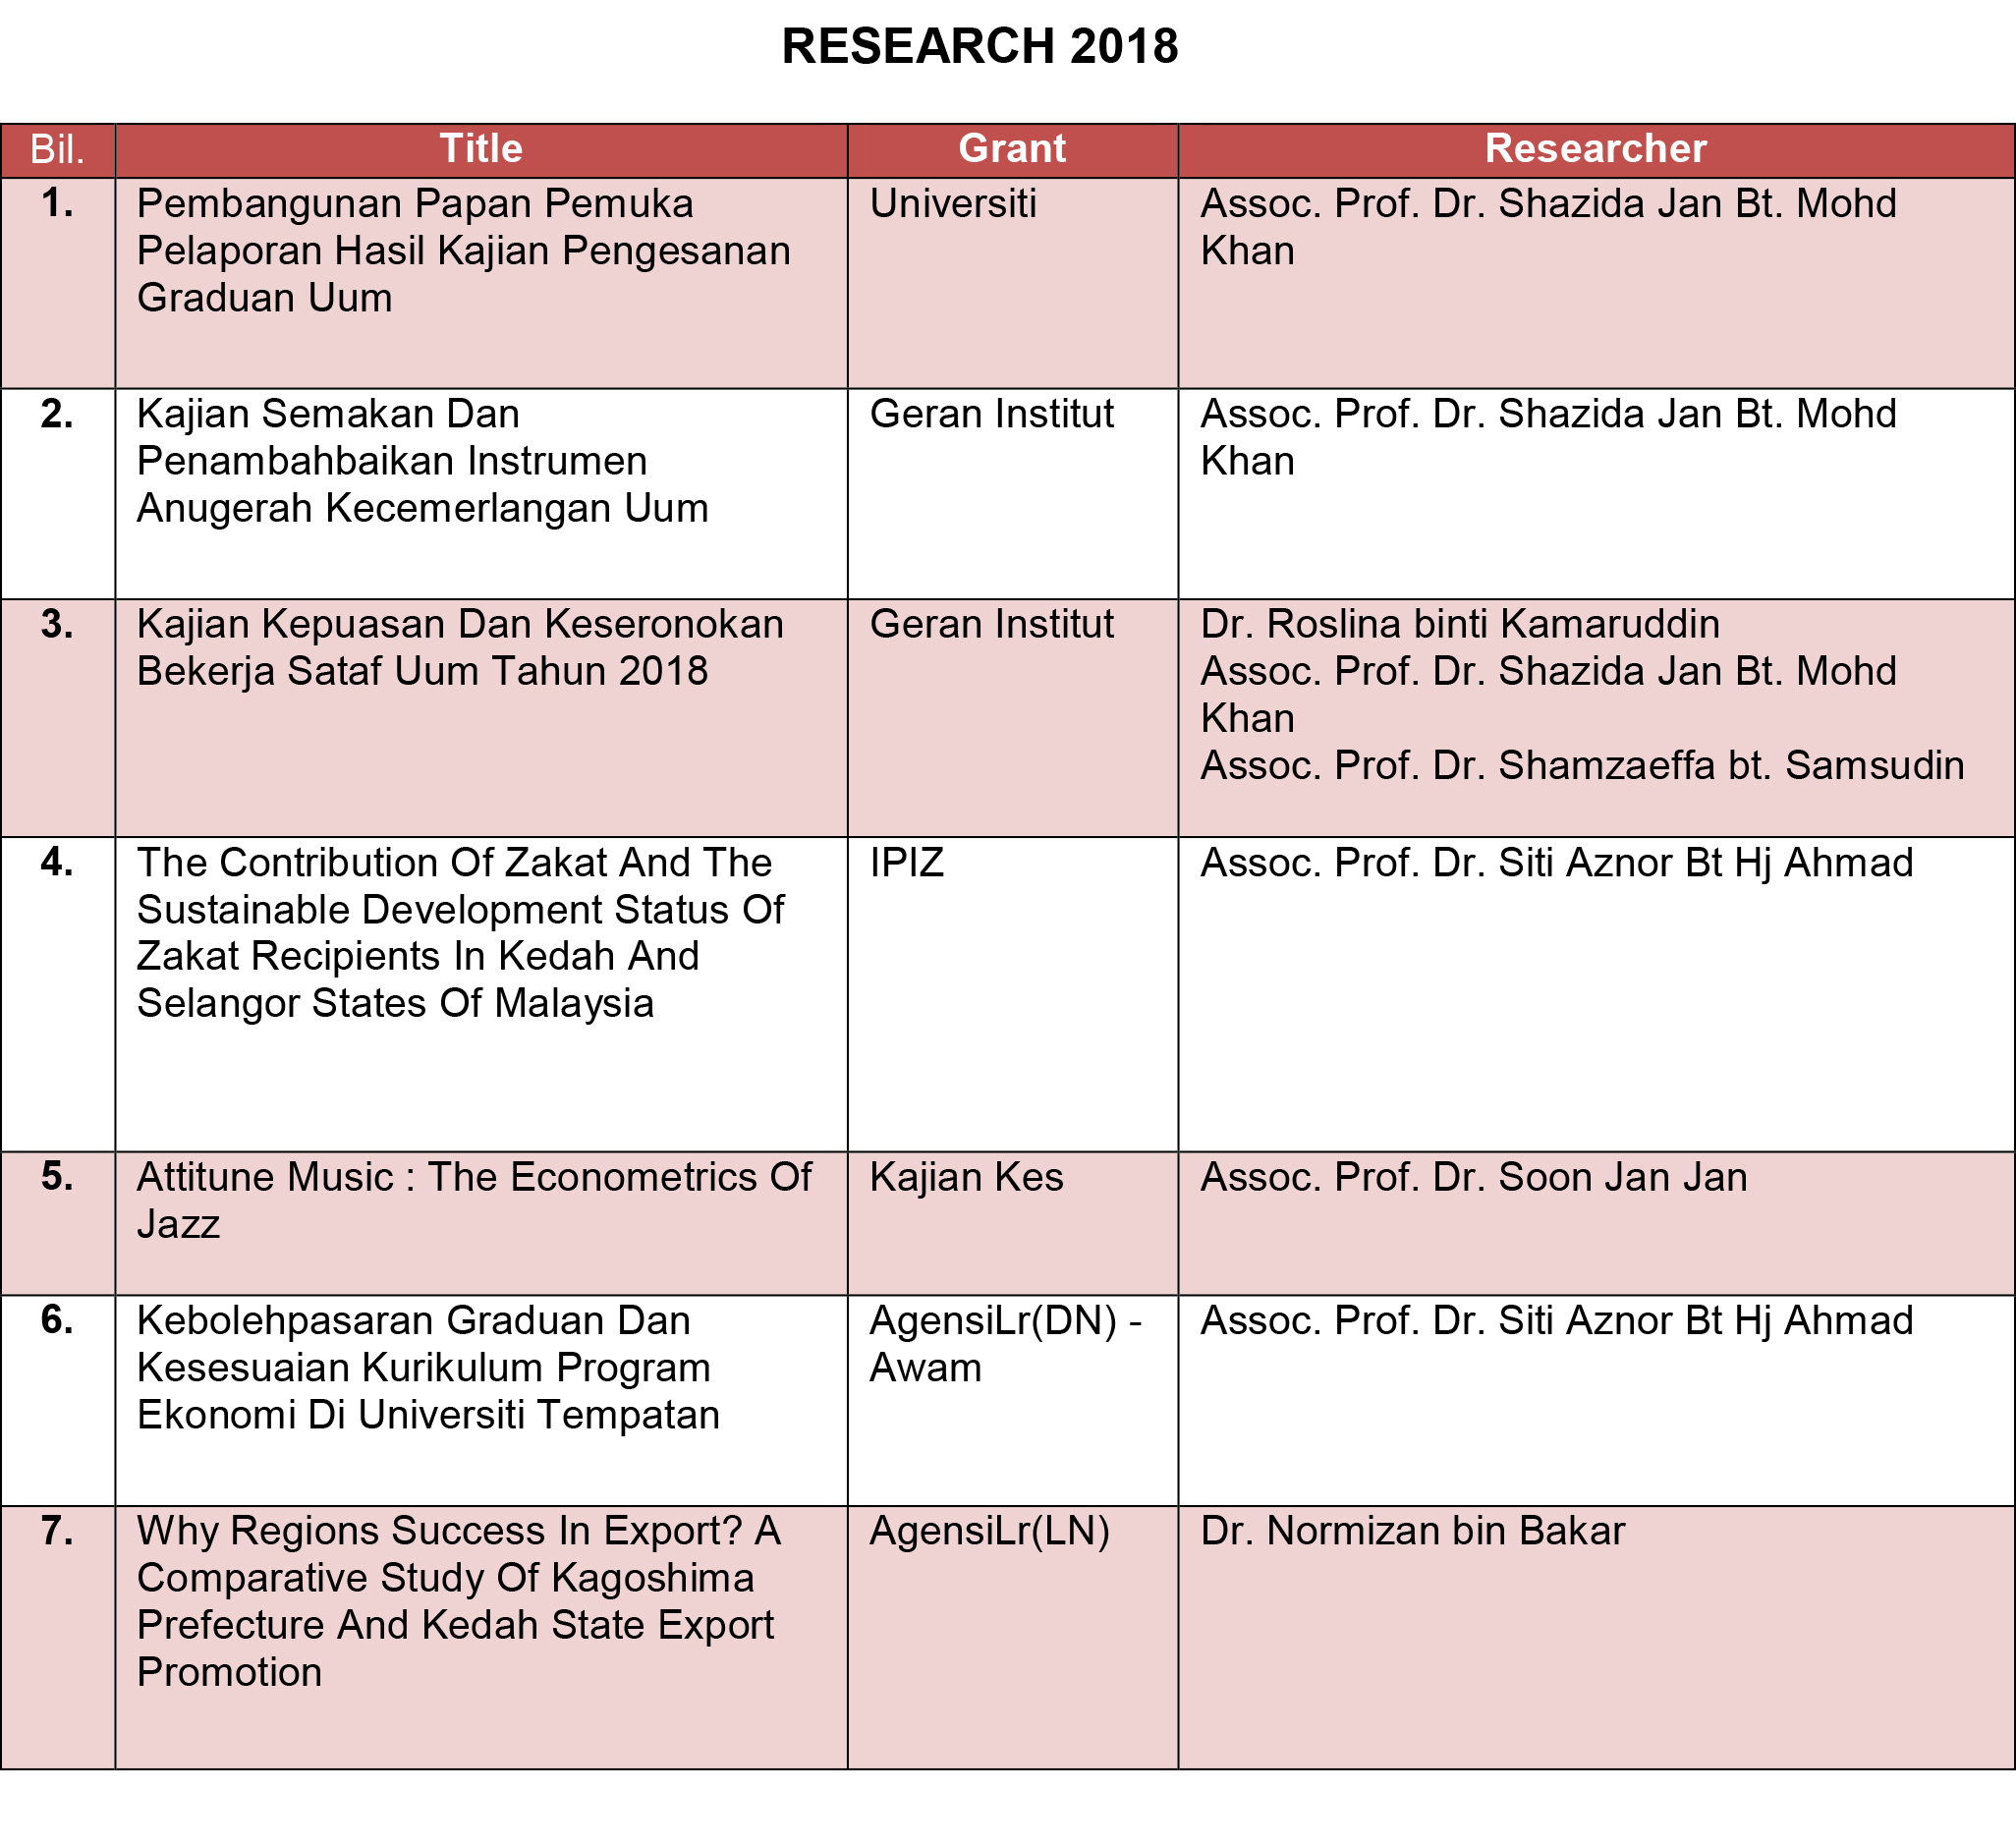 RESEARCH 2018